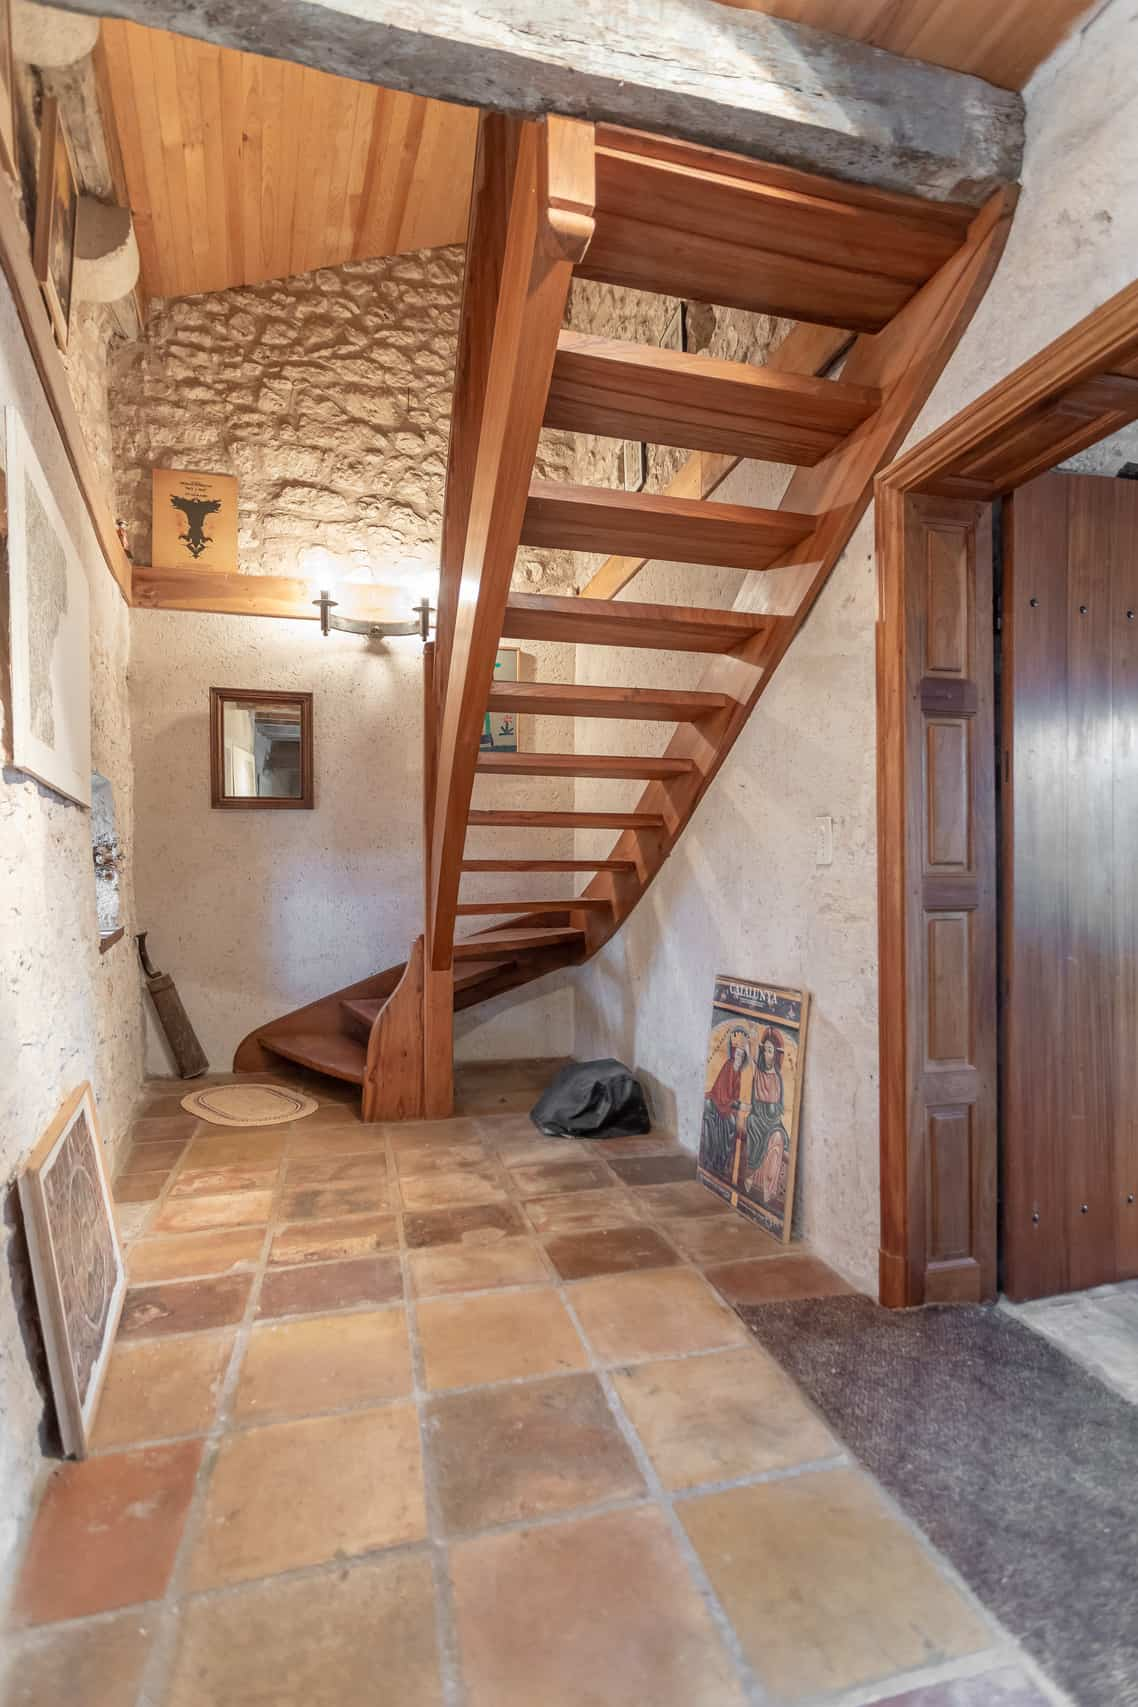 Staircase-47015